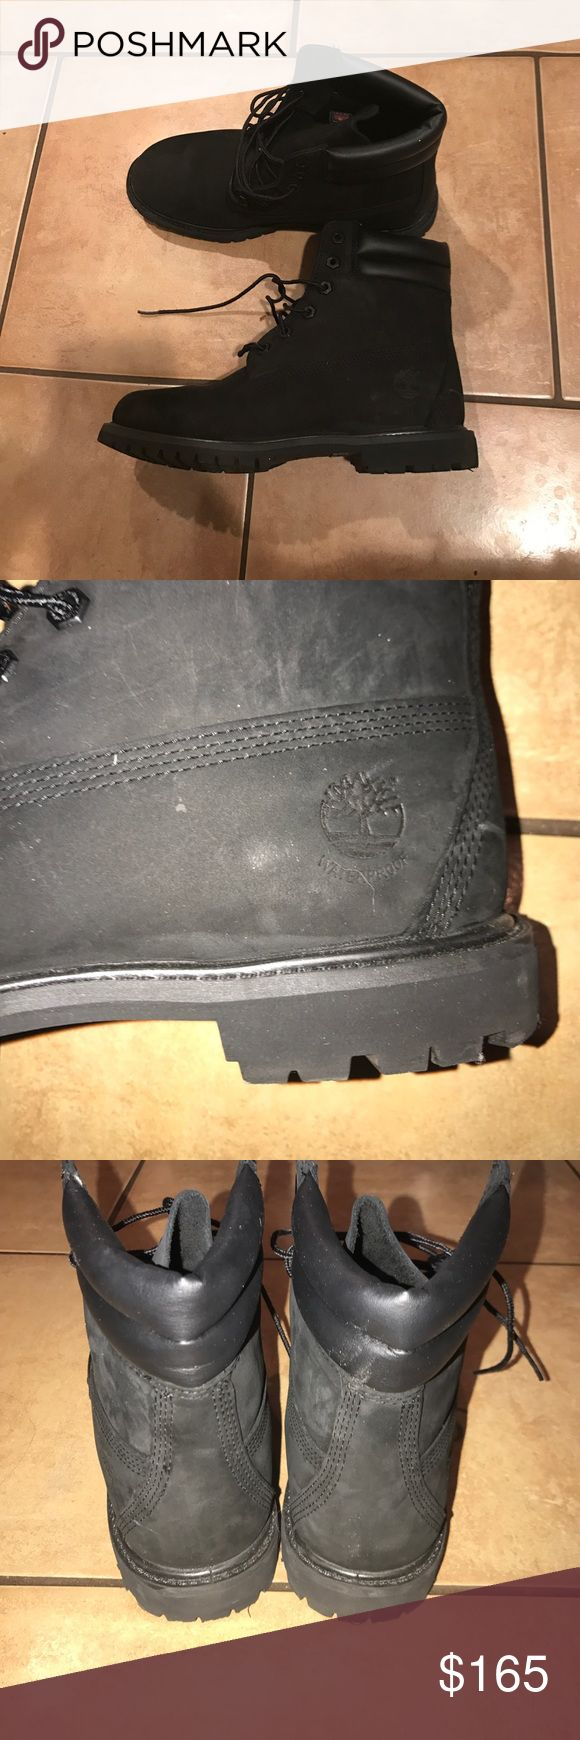 WORN ONCE BLACK TIMBERLAND BOOTS Size 9.5 WOMENS  worn one time soles still clean all black boots Timberland Shoes